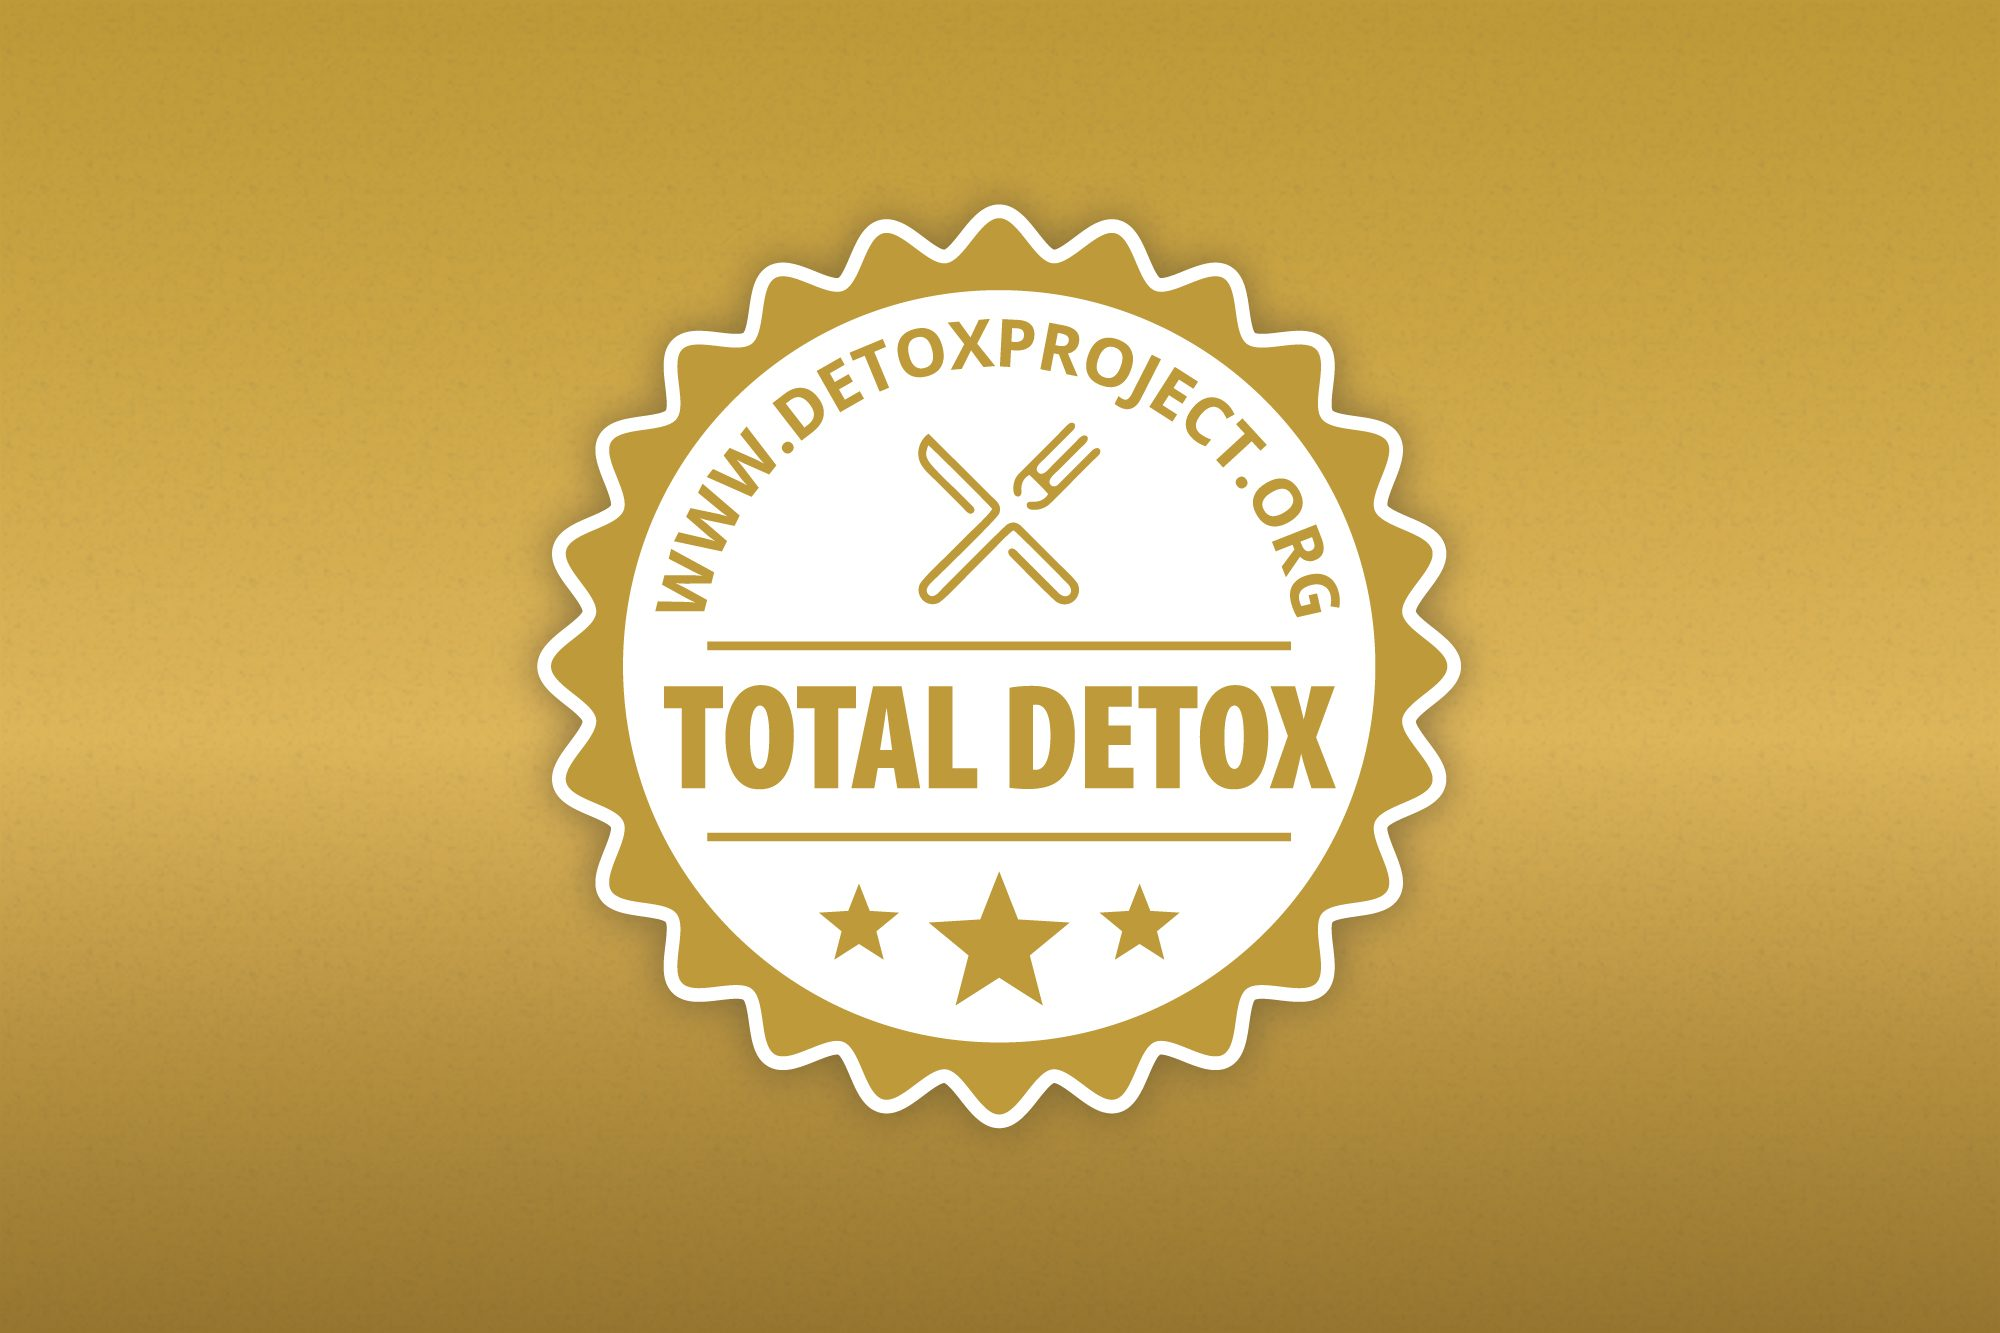 Biome Medic is Detox Certified!